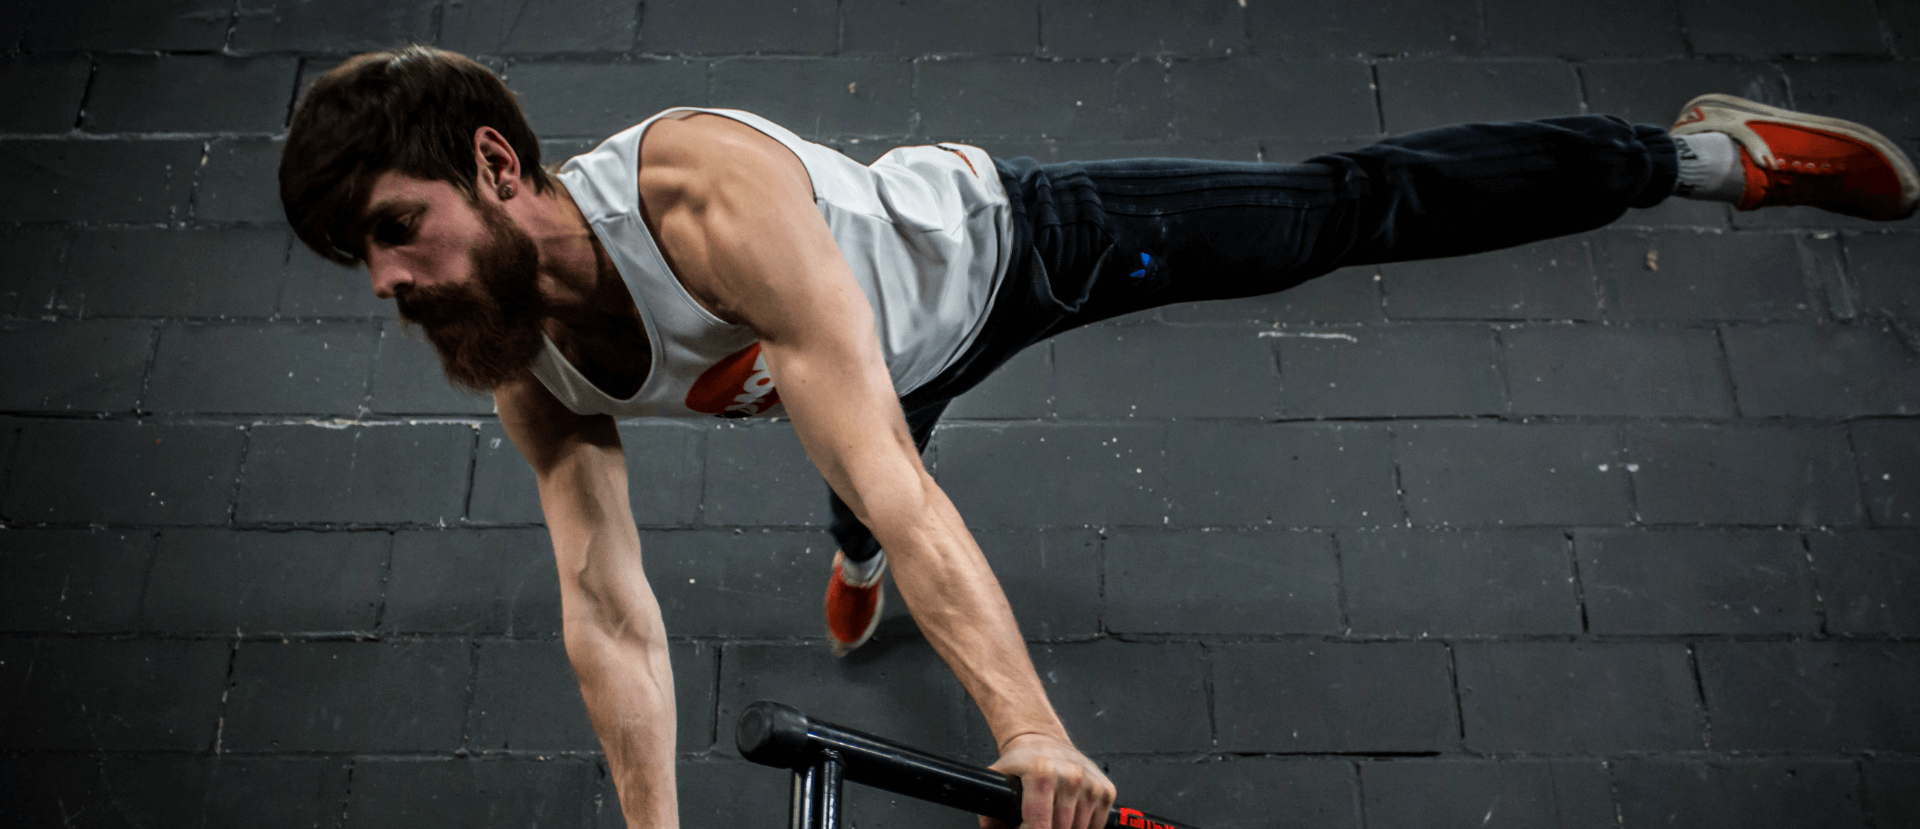 Beginner to Pro Parallel Bar Exercises   Pull Up Mate - Pull